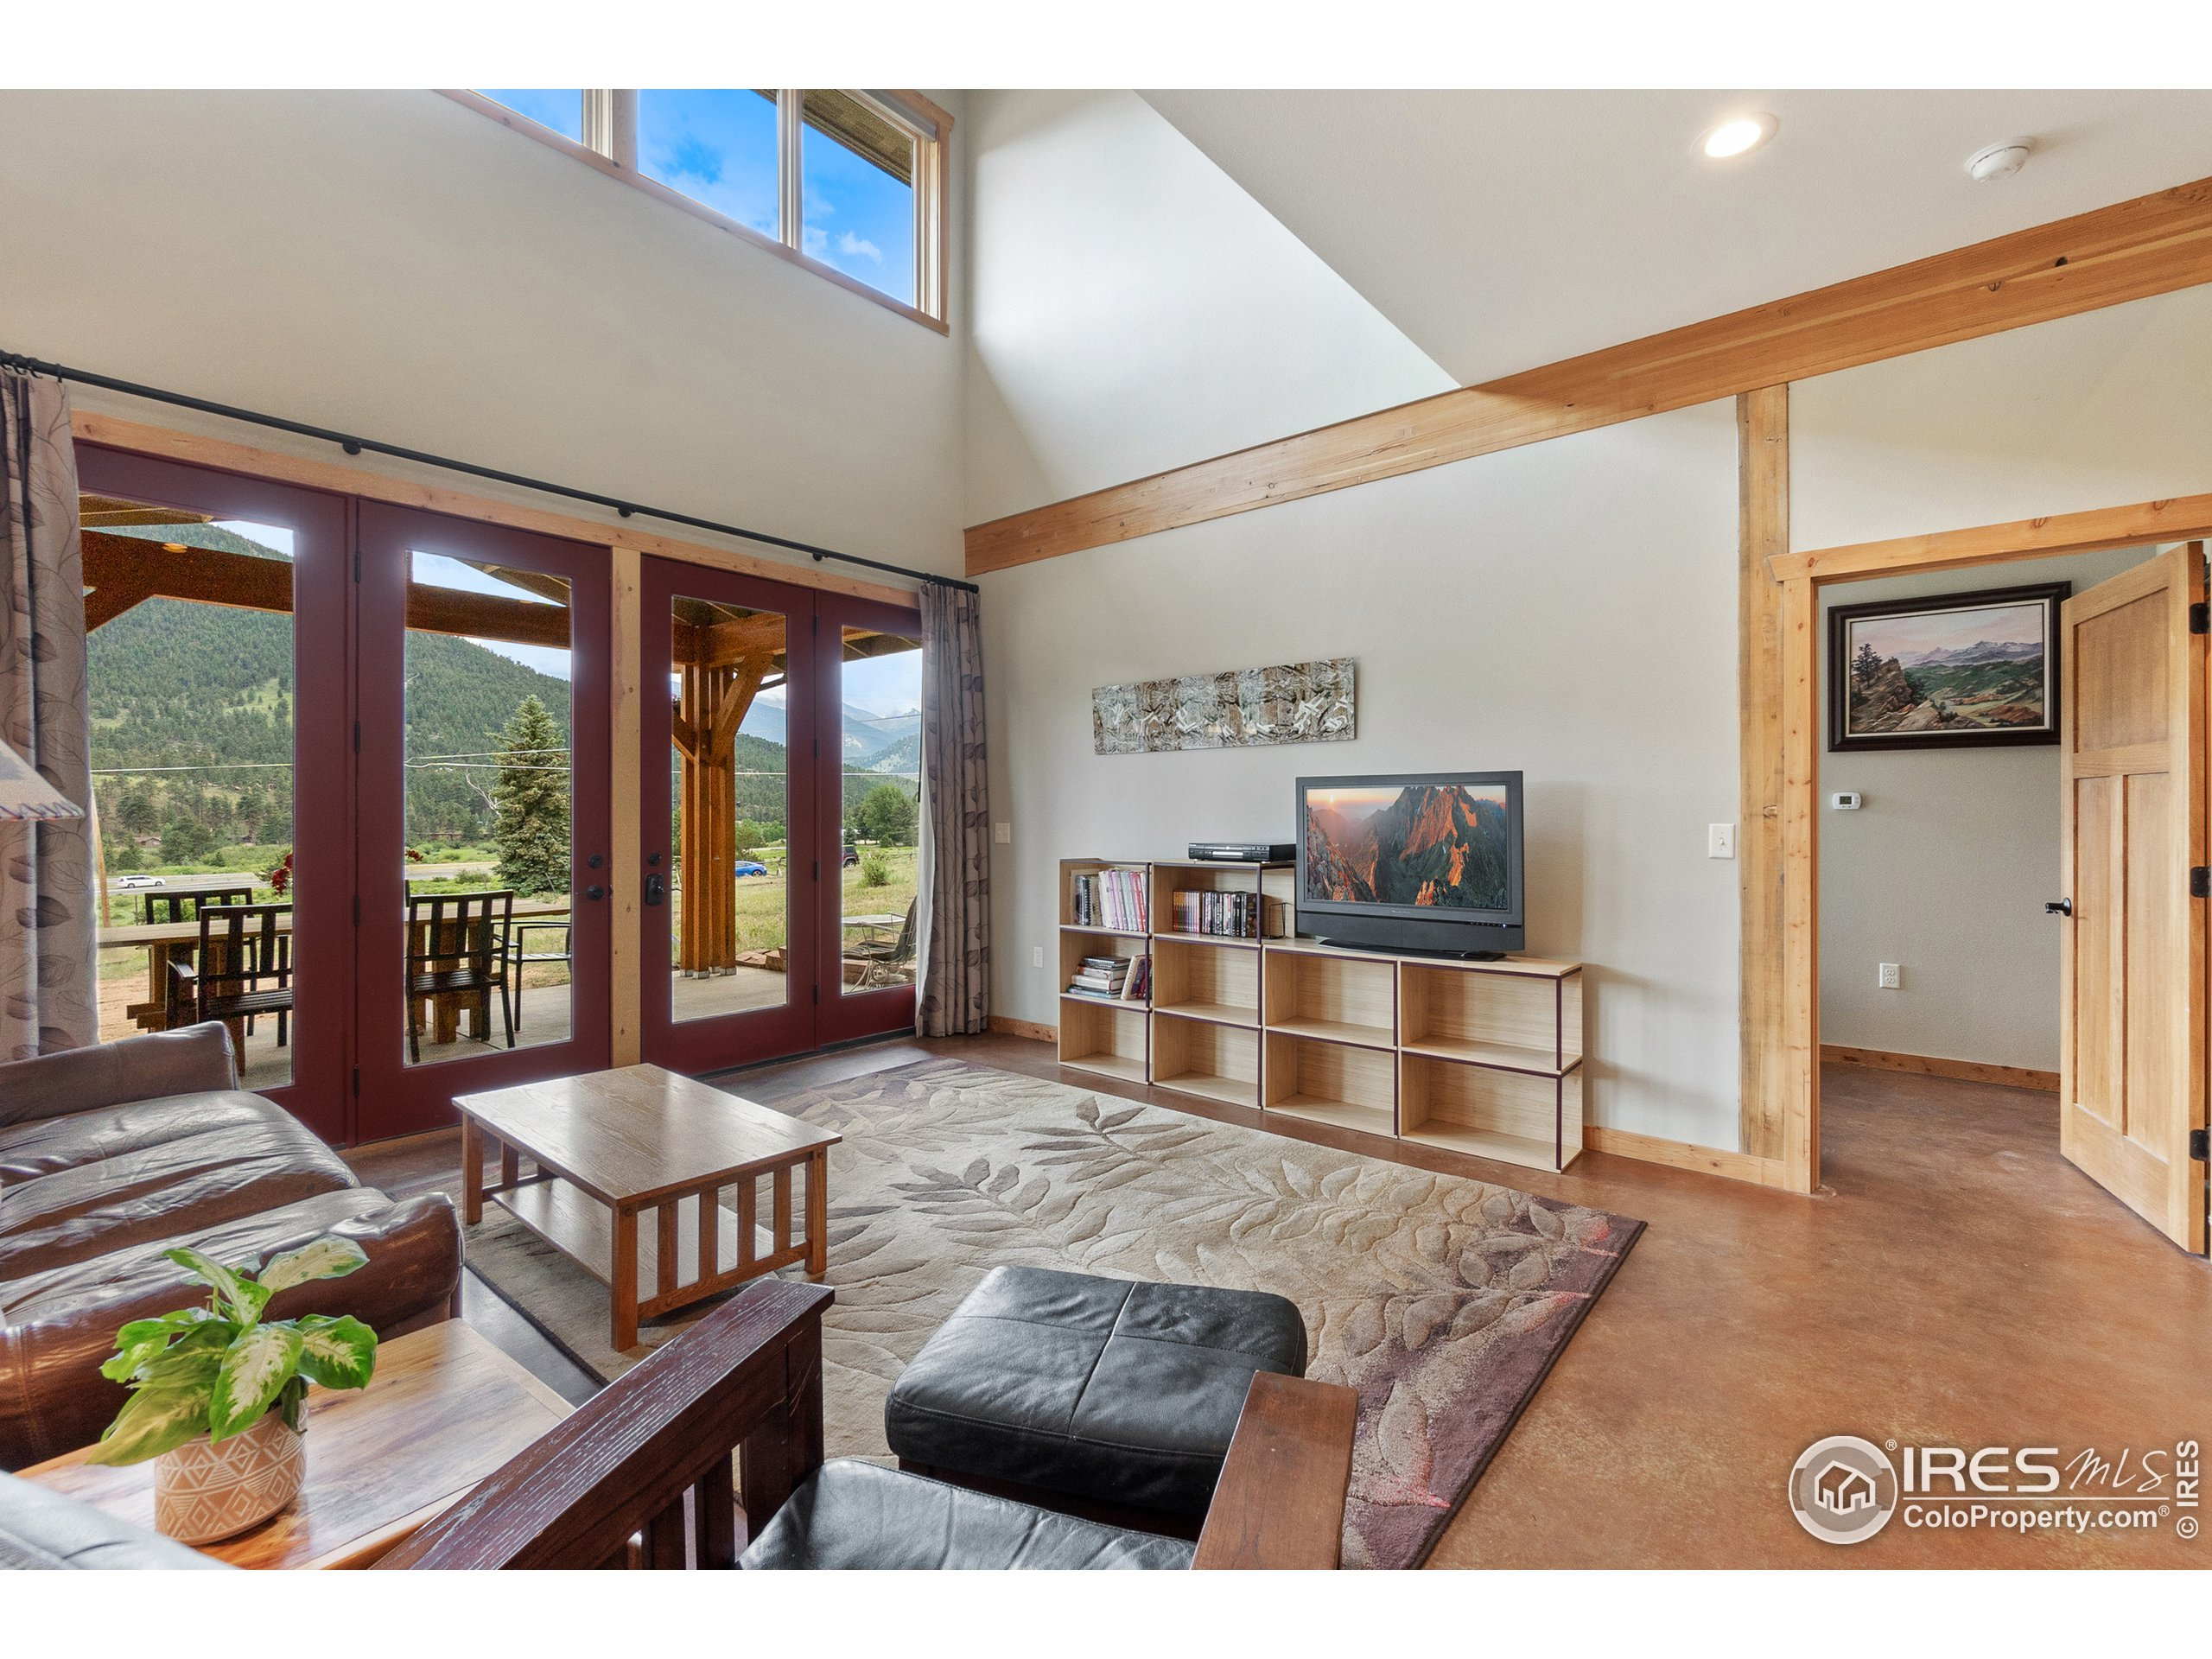 Vaulted ceilings to let in that natural light